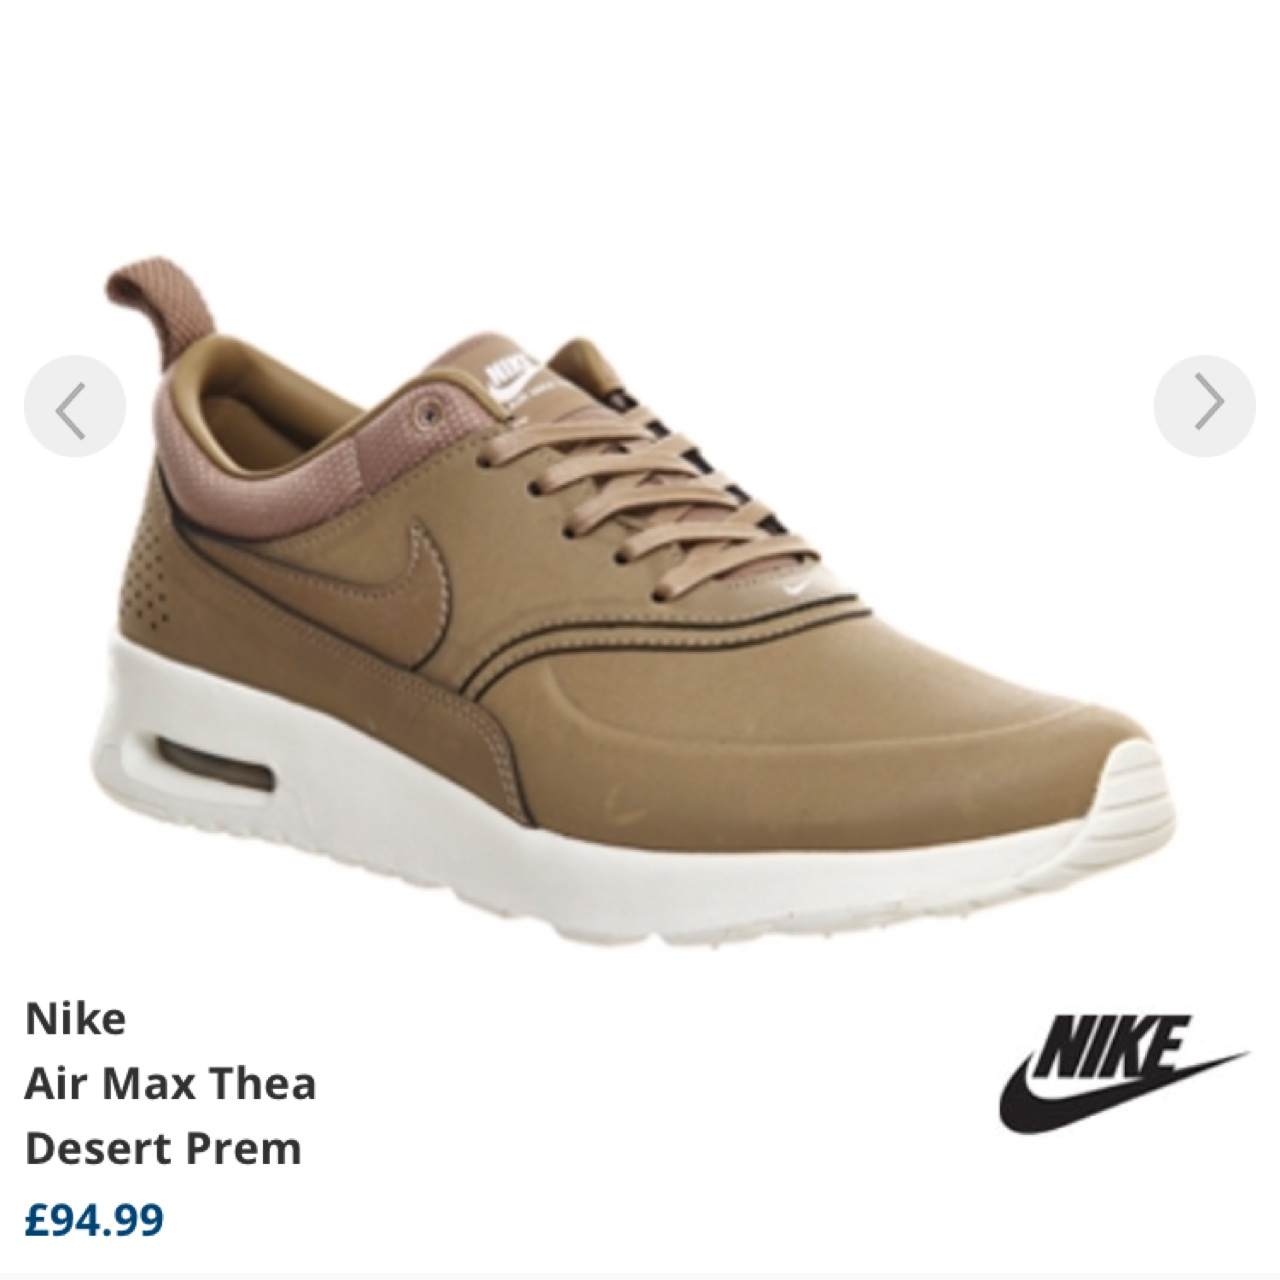 SOLD OUT. Brand New with box desertcamel Nike Thea